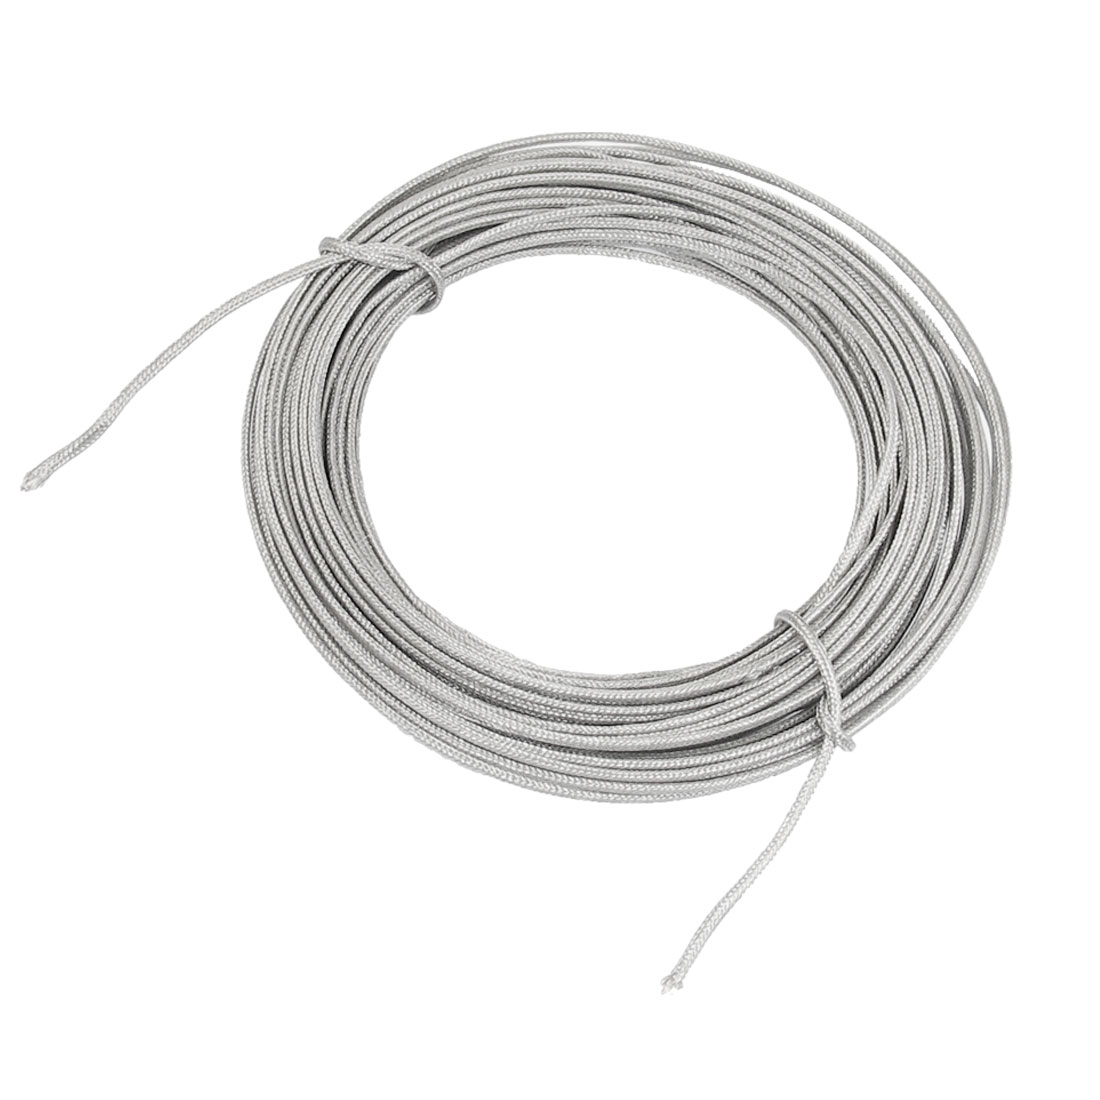 0-500C Temperature Range 3mm Width Thermocouple Extension Wire 20M